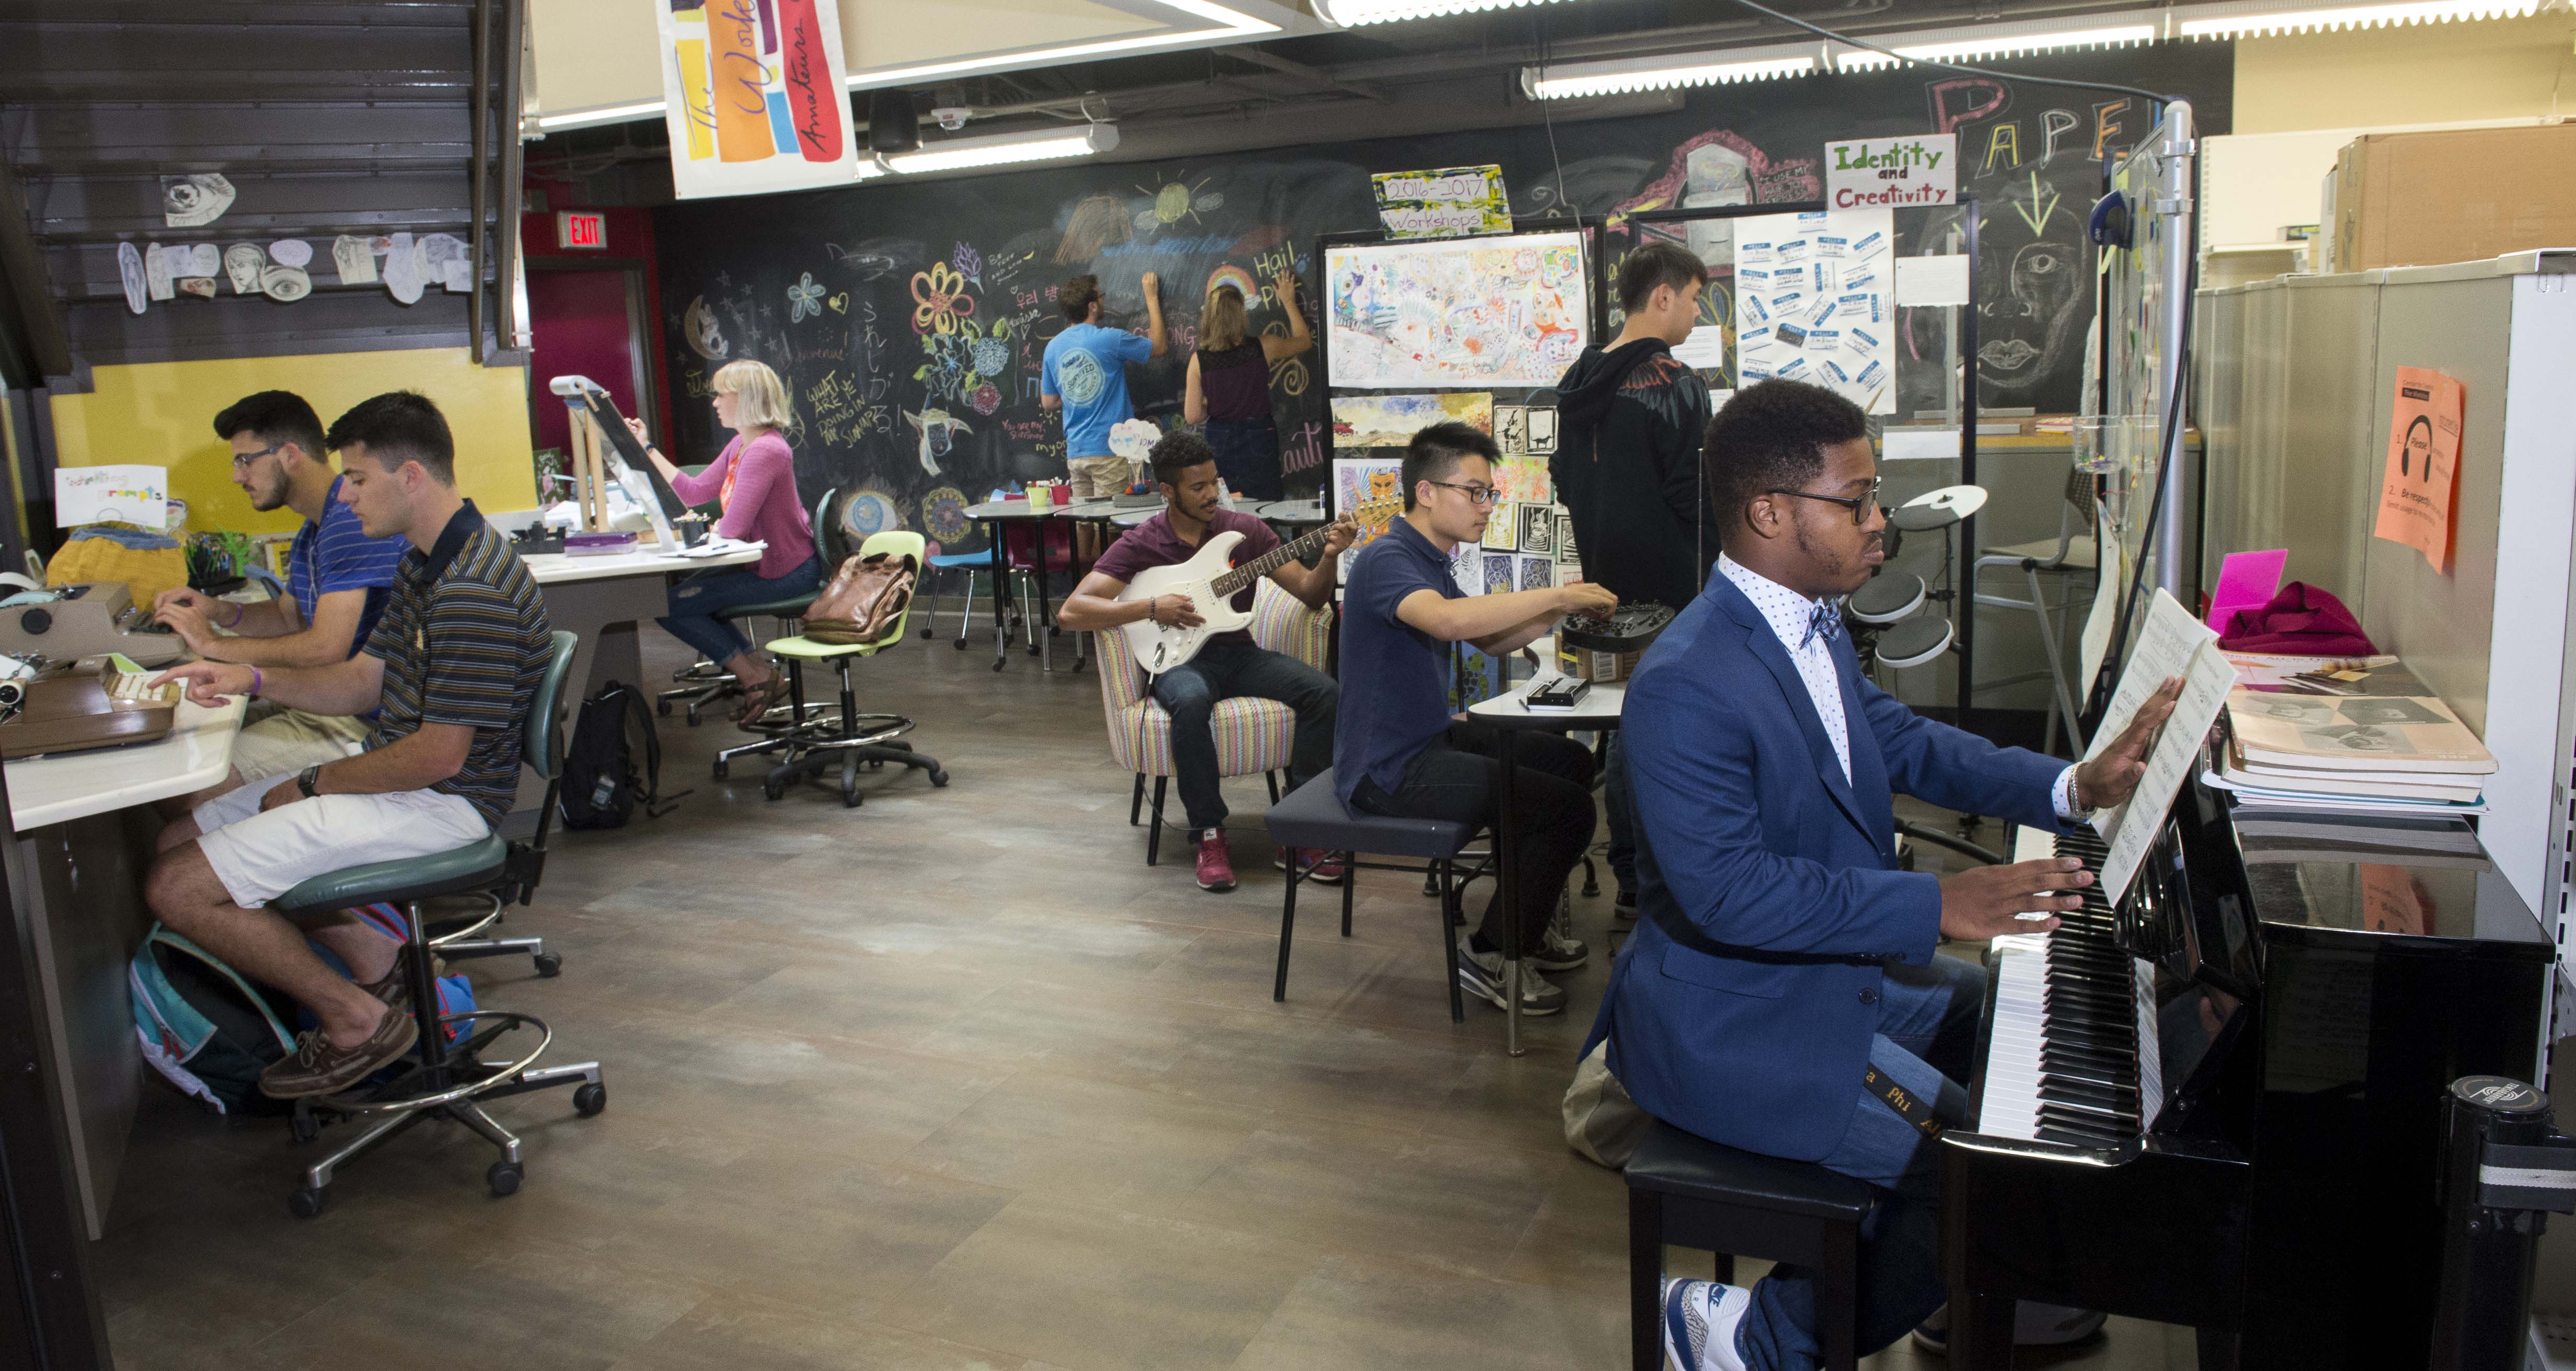 People playing instruments and making art in Center for Creativity